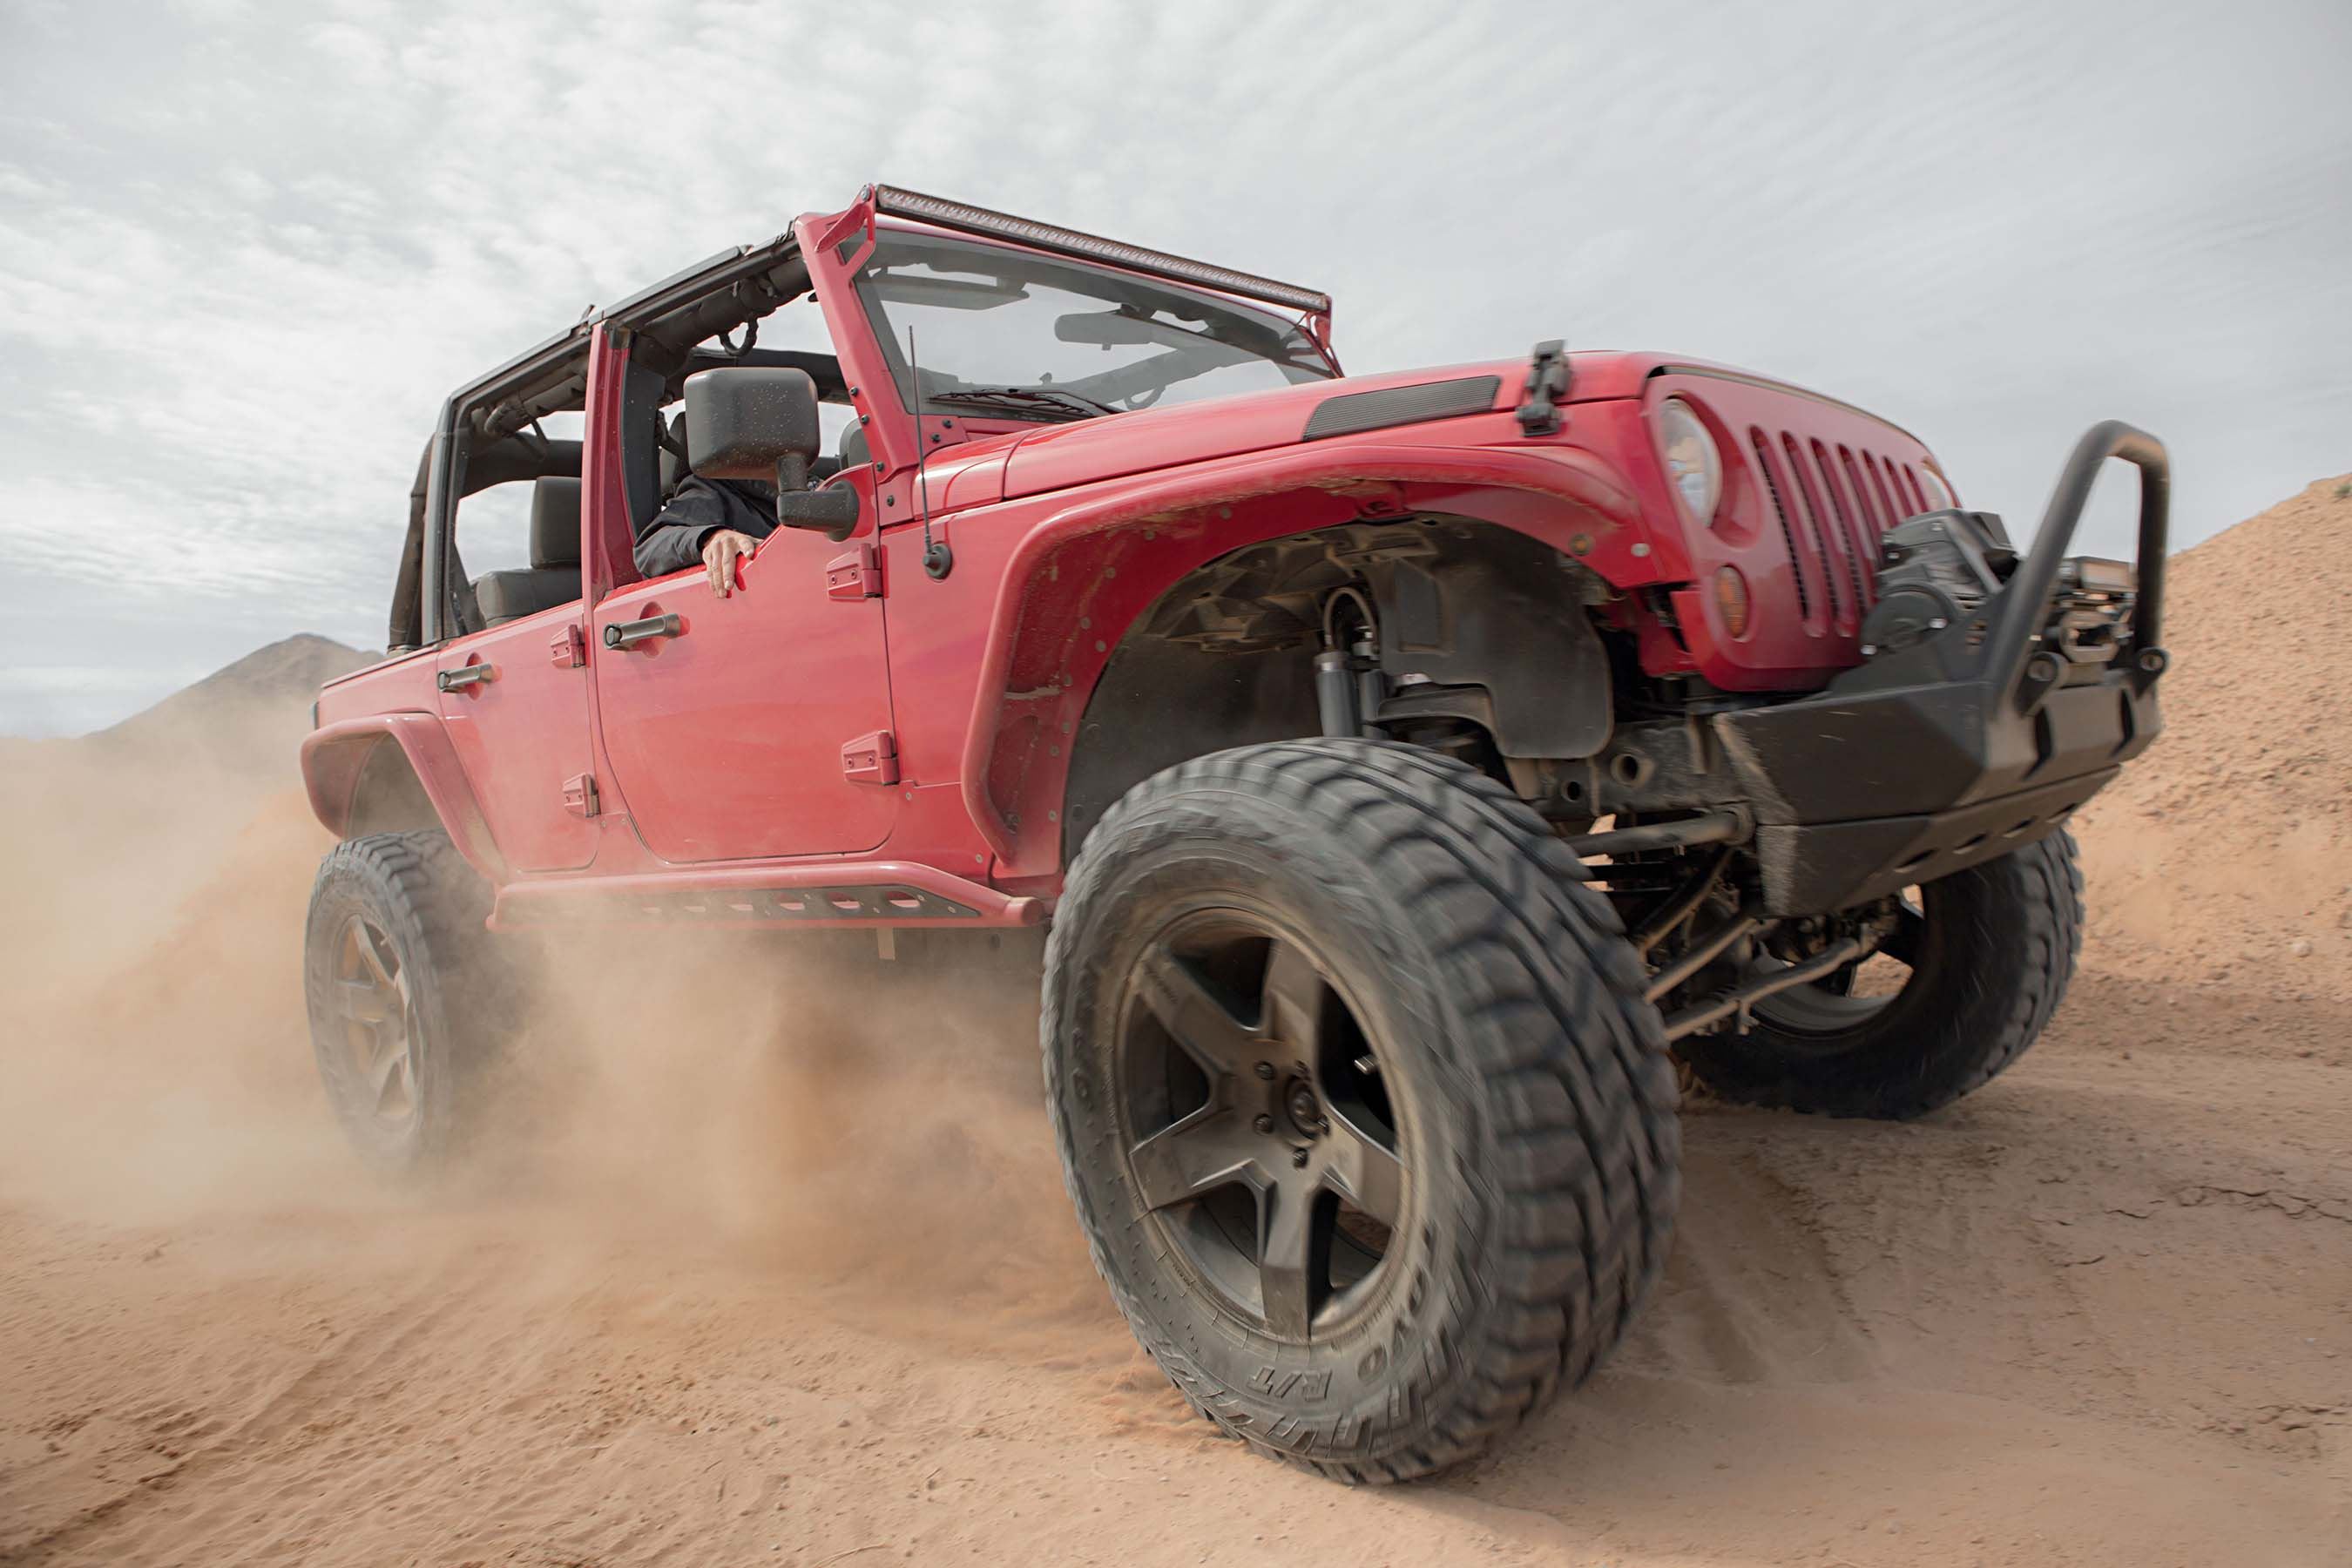 The new Toyo® Open Country® R/T by Toyo Tires® is backed by a 45,000-mile warranty and the Toyo Tires No Regrets® 45-Day/500-Mile Trial Offer. (See ToyoTires.com for details.)